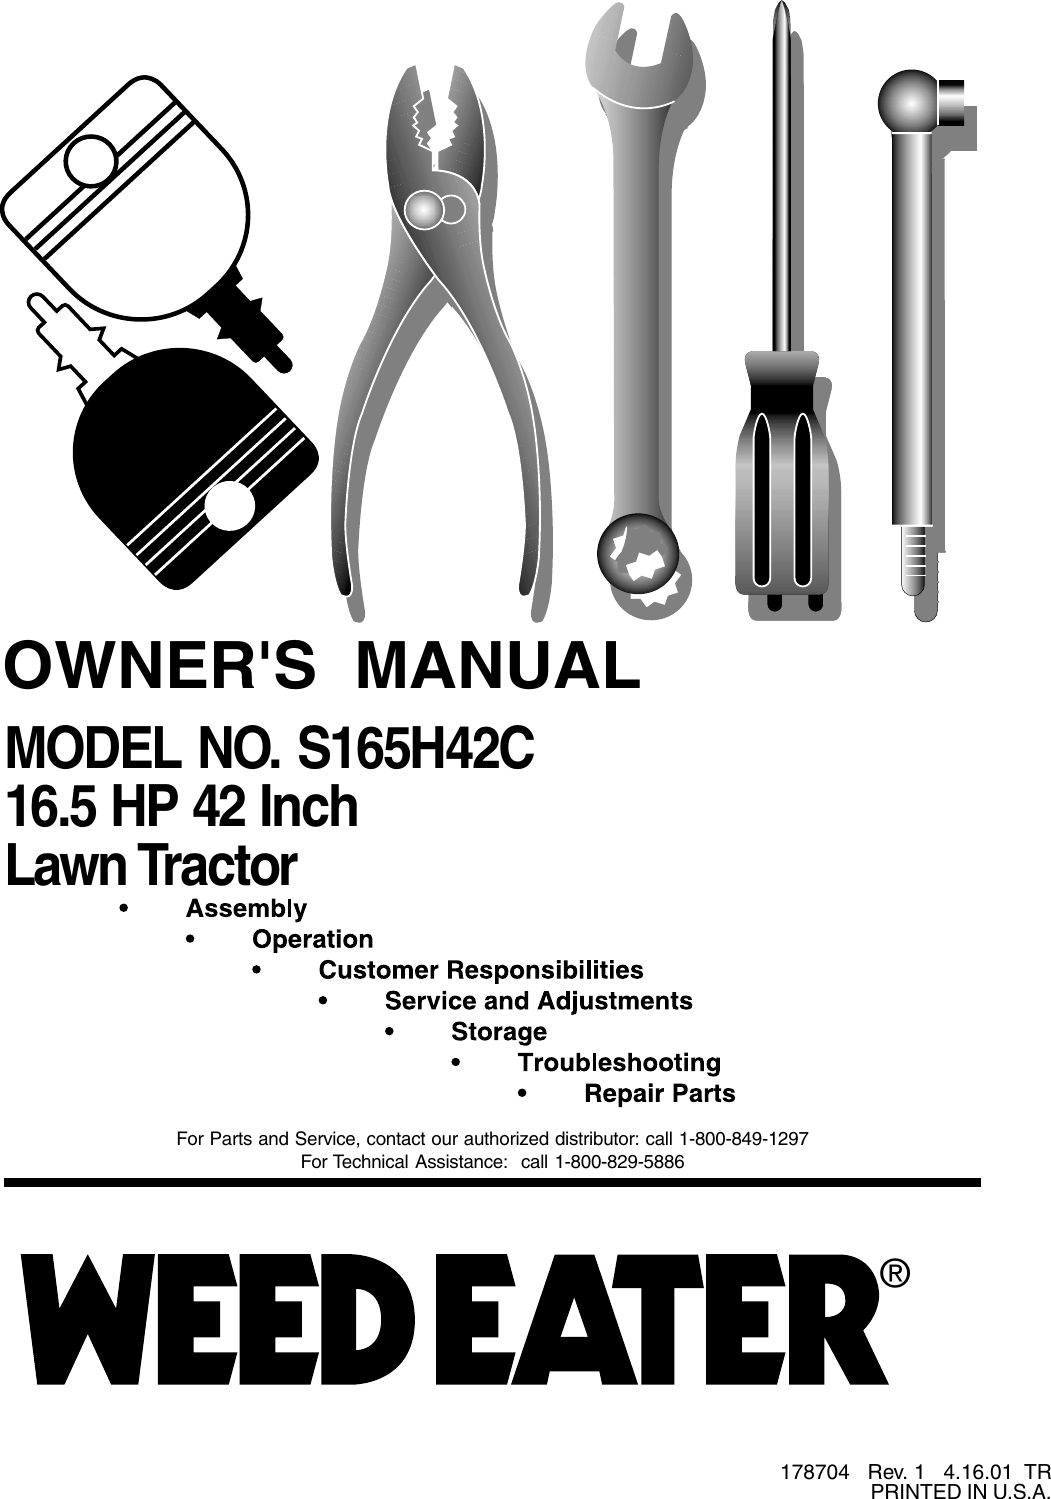 Weed Eater 178704 Owners Manual OM, S165H42C, 2001 04